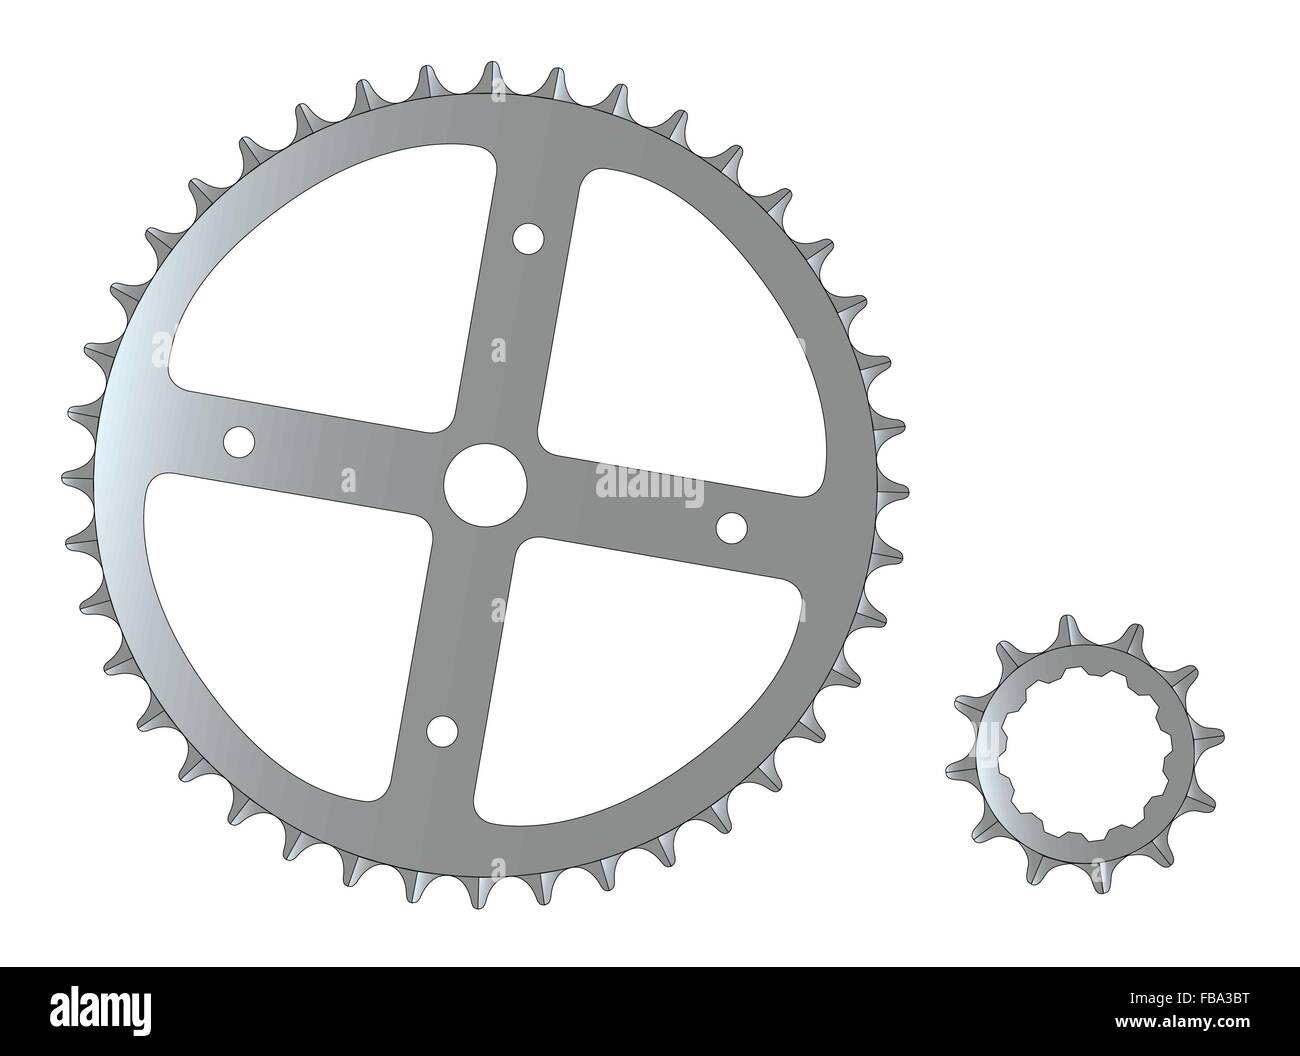 The front and rear gearing cogs of a typical bicycle. - Stock Vector